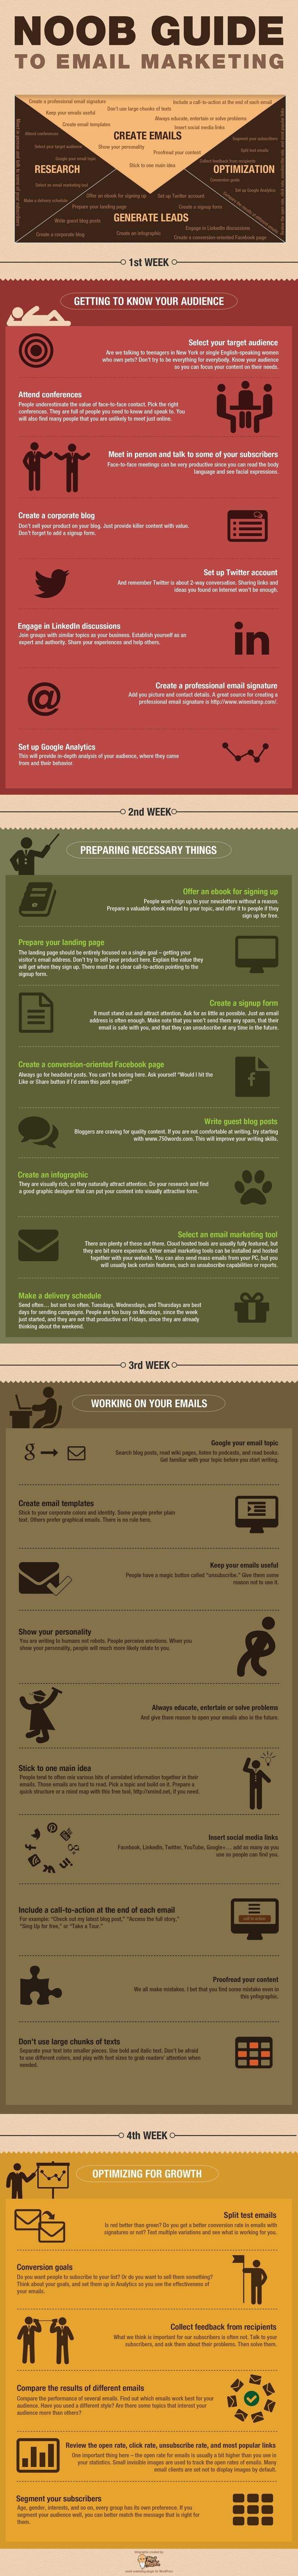 #Infographic: The Noob Guide to Email #Marketing http://fleetheratrace.blogspot.co.uk/2014/09/10-email-marketing-tactics-youve-never.html #emailmarketing #increasesales #emailmarketingtips